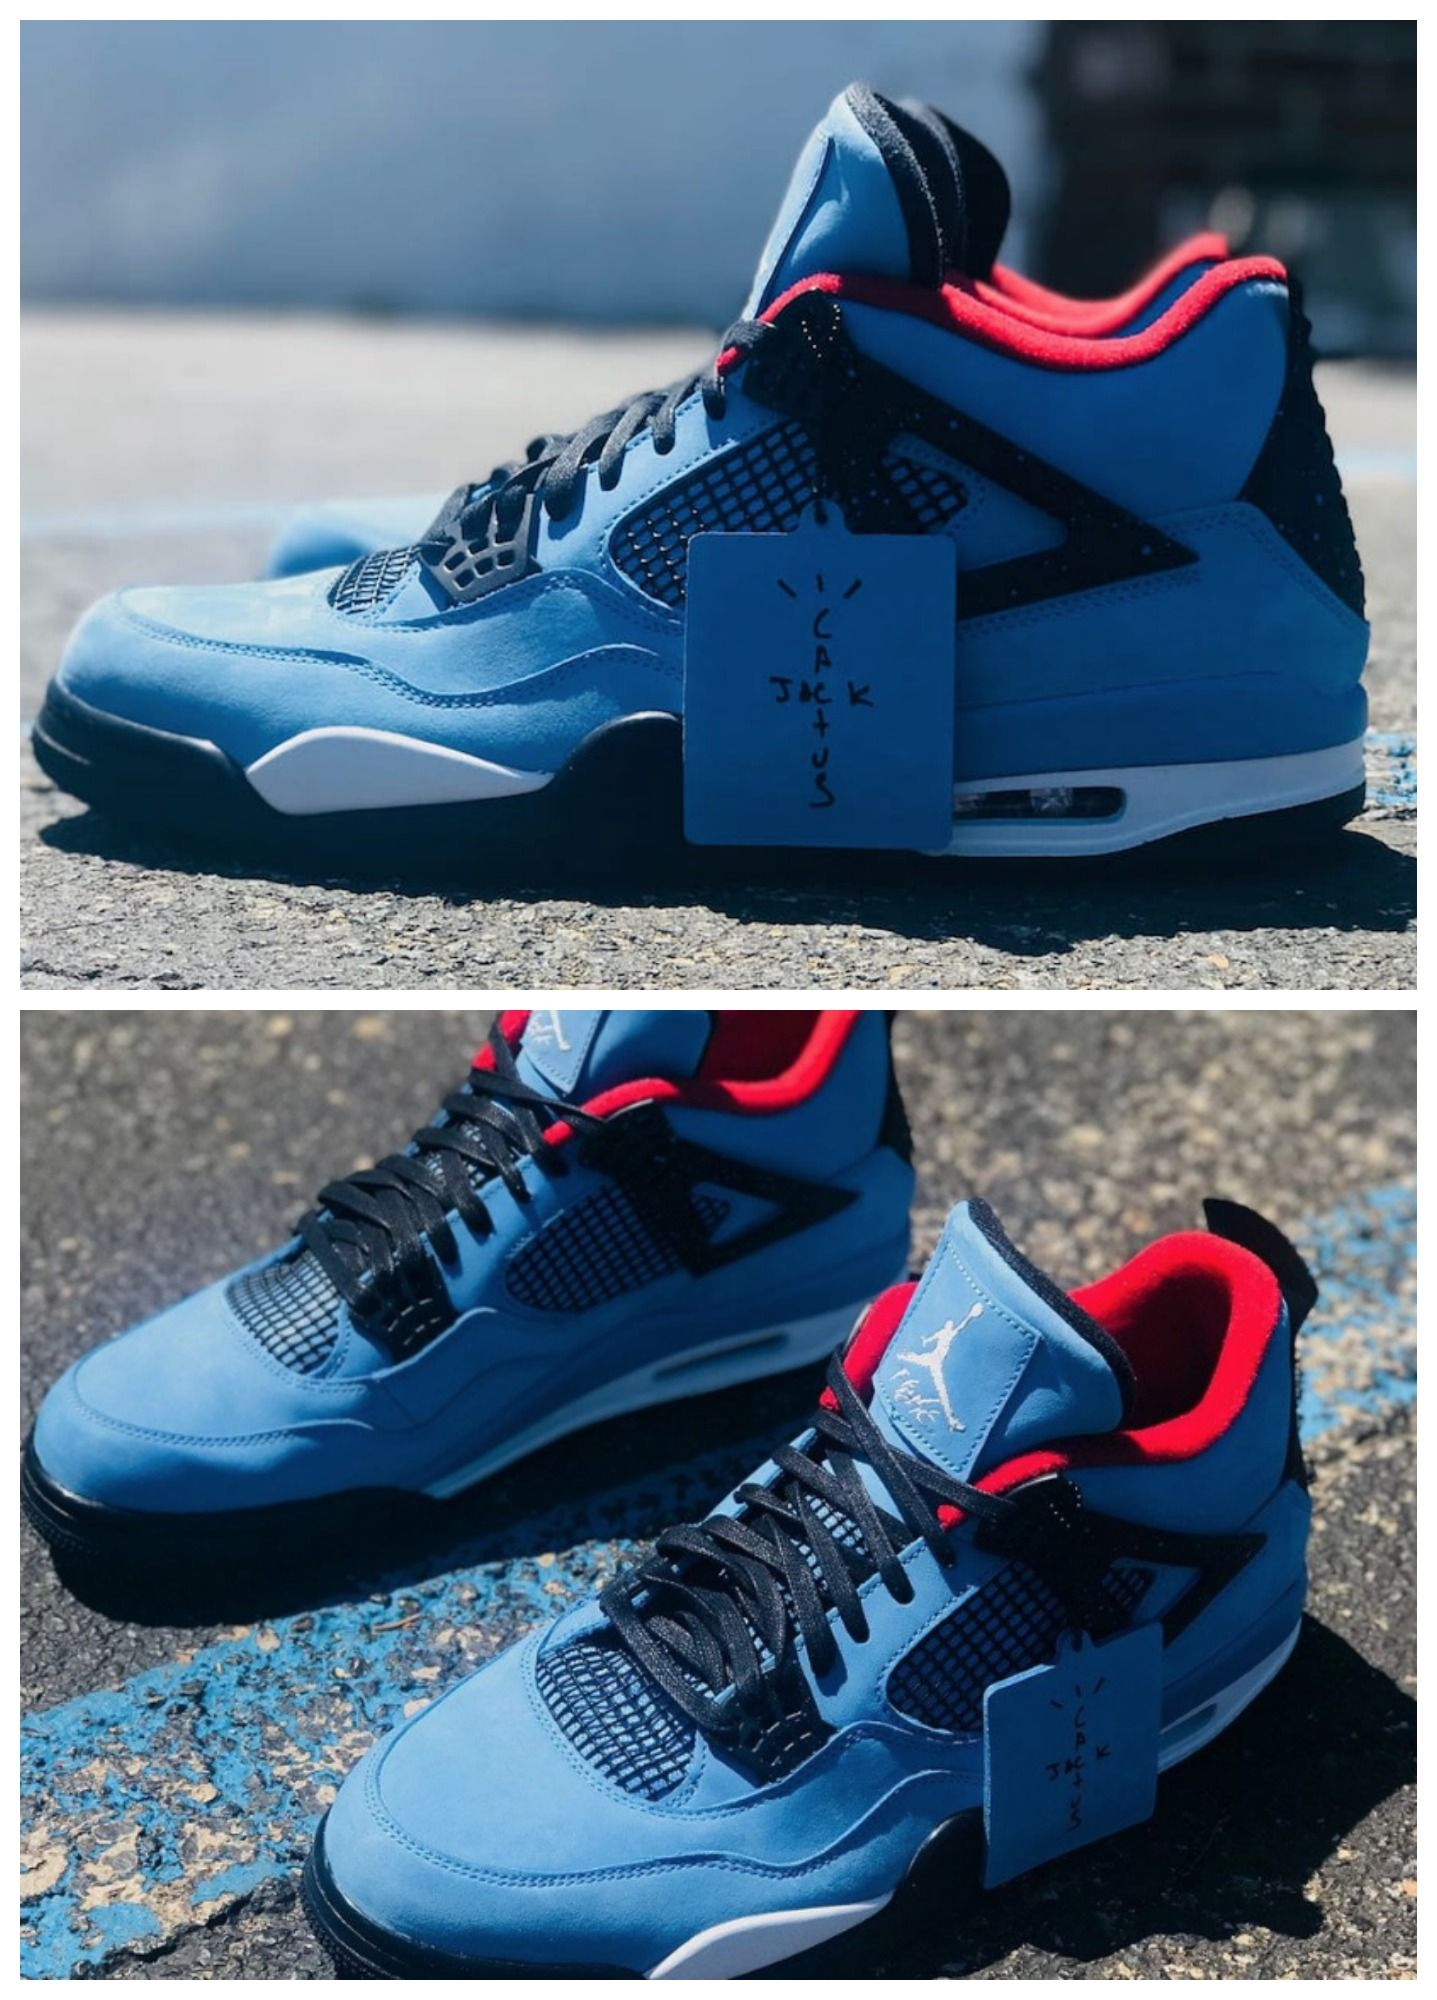 Travis Scott X Air Jordan 4 Cactus Jack The Hip Hop Artist And